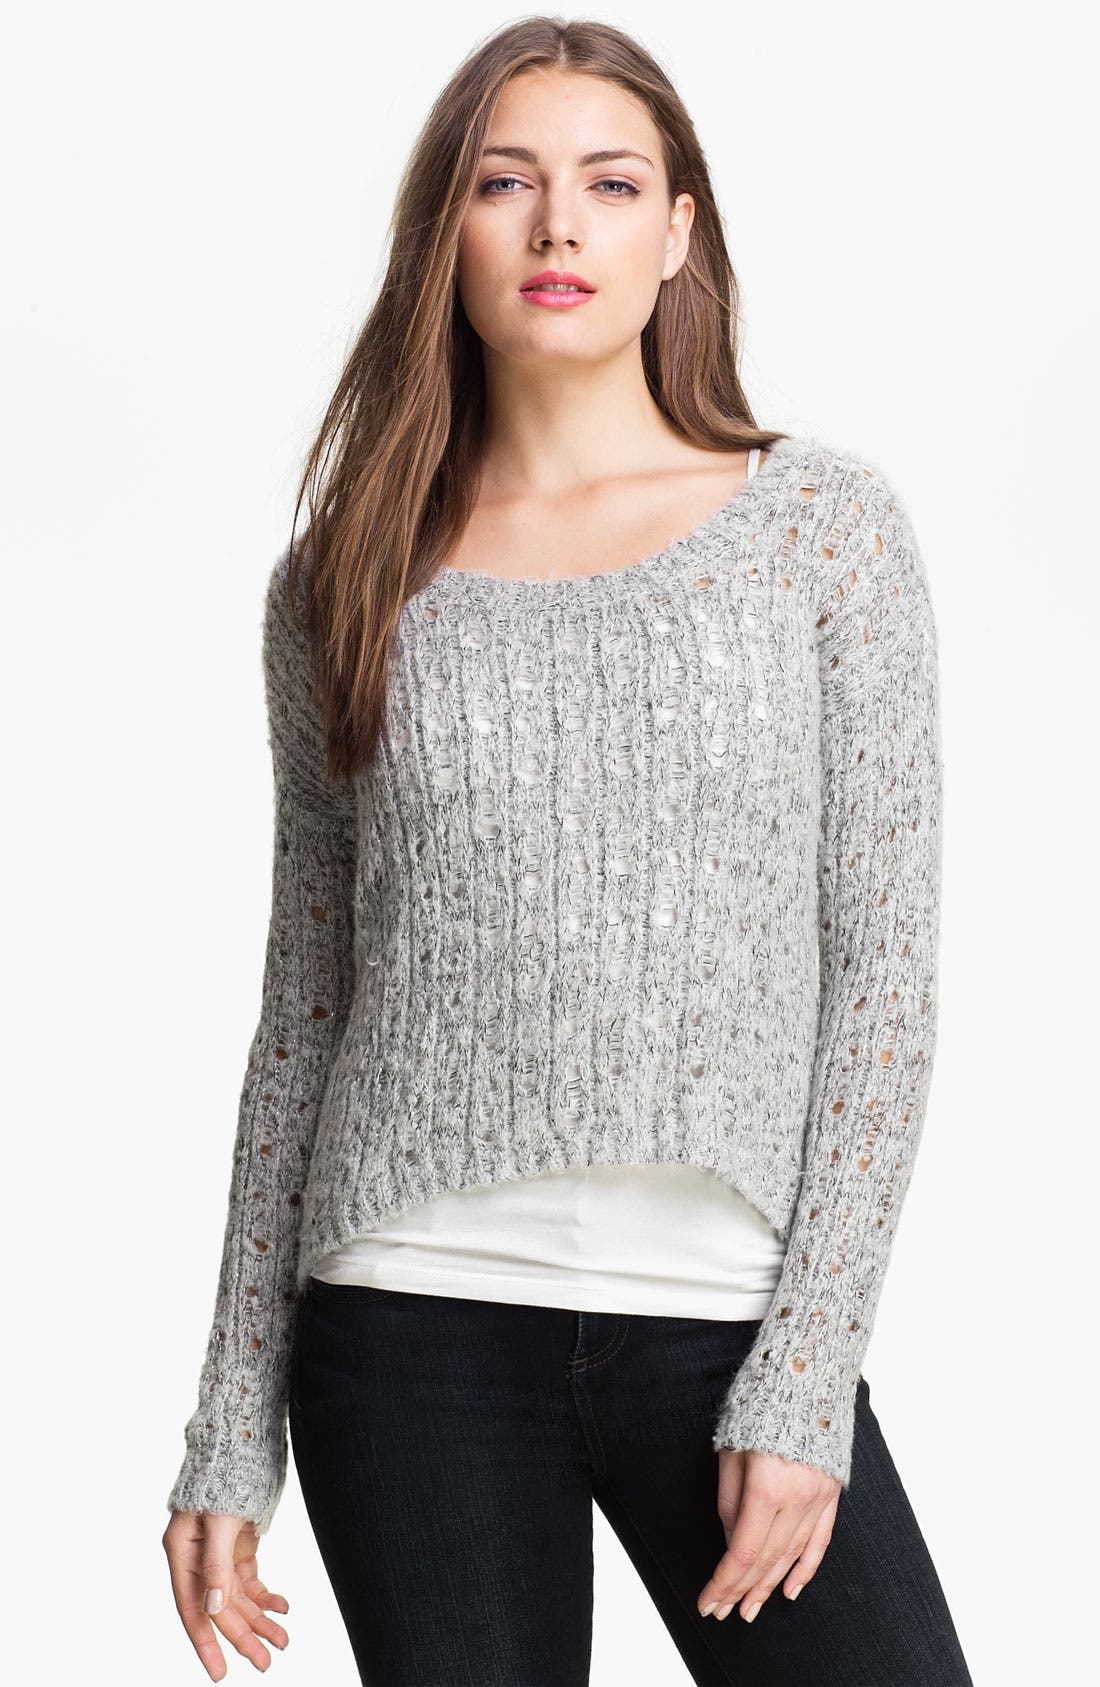 Alternate Image 1 Selected - Kensie Open Stitch Sweater (Online Exclusive)